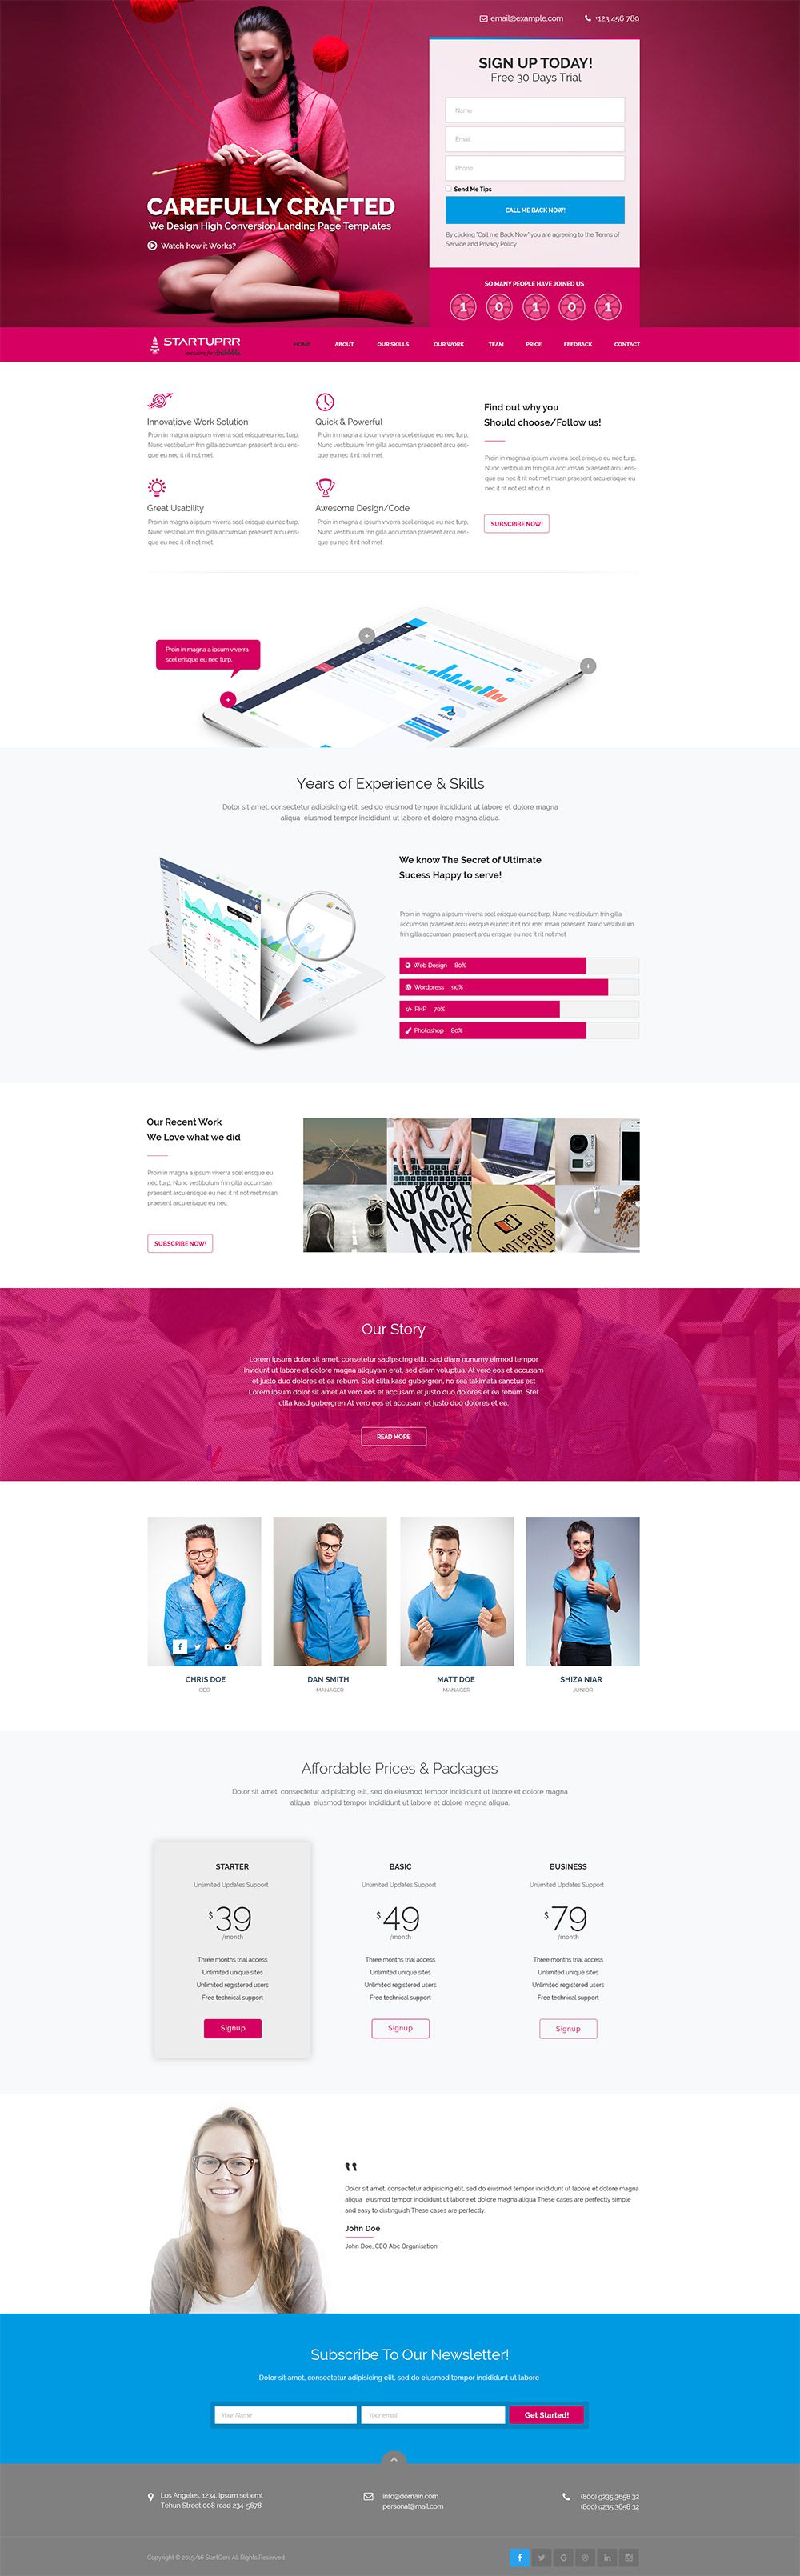 Website Layout Template Pdownload Product And Services Website Landing Page Template Free